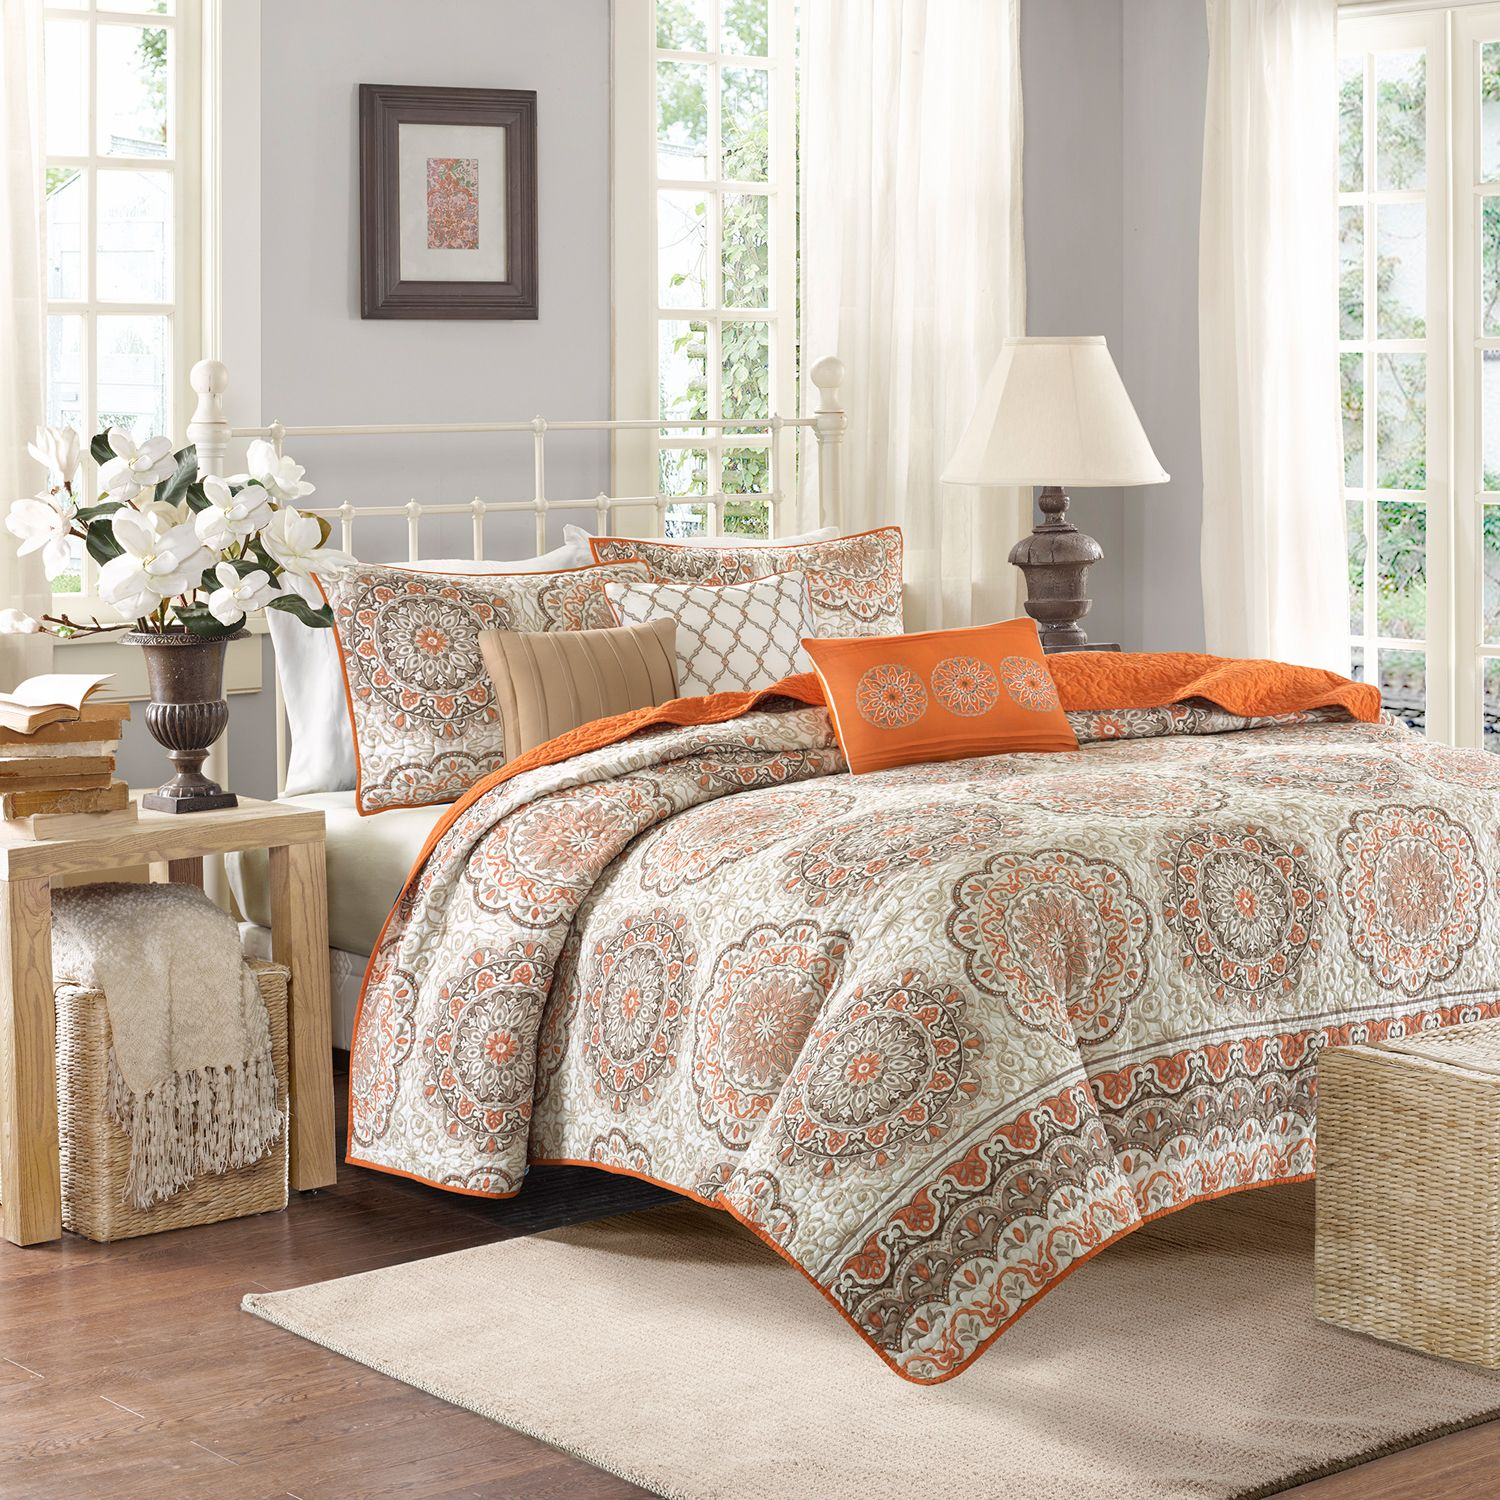 Attractive Madison Park Moraga 6 Pc. Quilt Set. Blue Orange